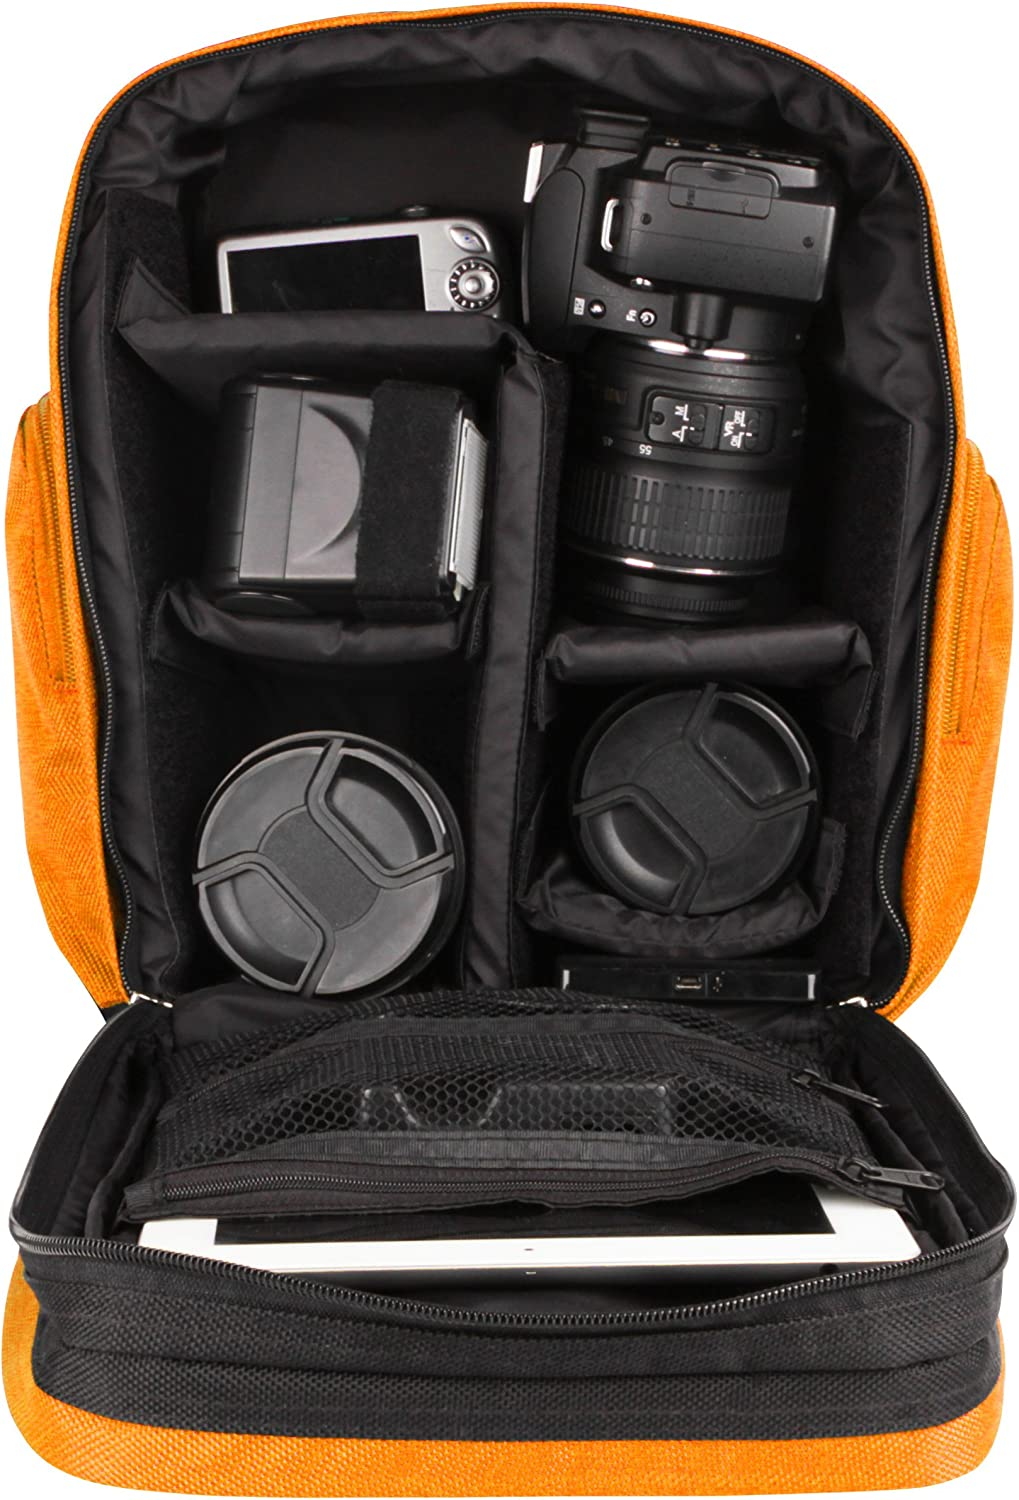 D300s DSLR Travel Camera Bag for Nikon D3 D3200 D300 D3100 D3000 D3X DSLR Camera D3S D3300